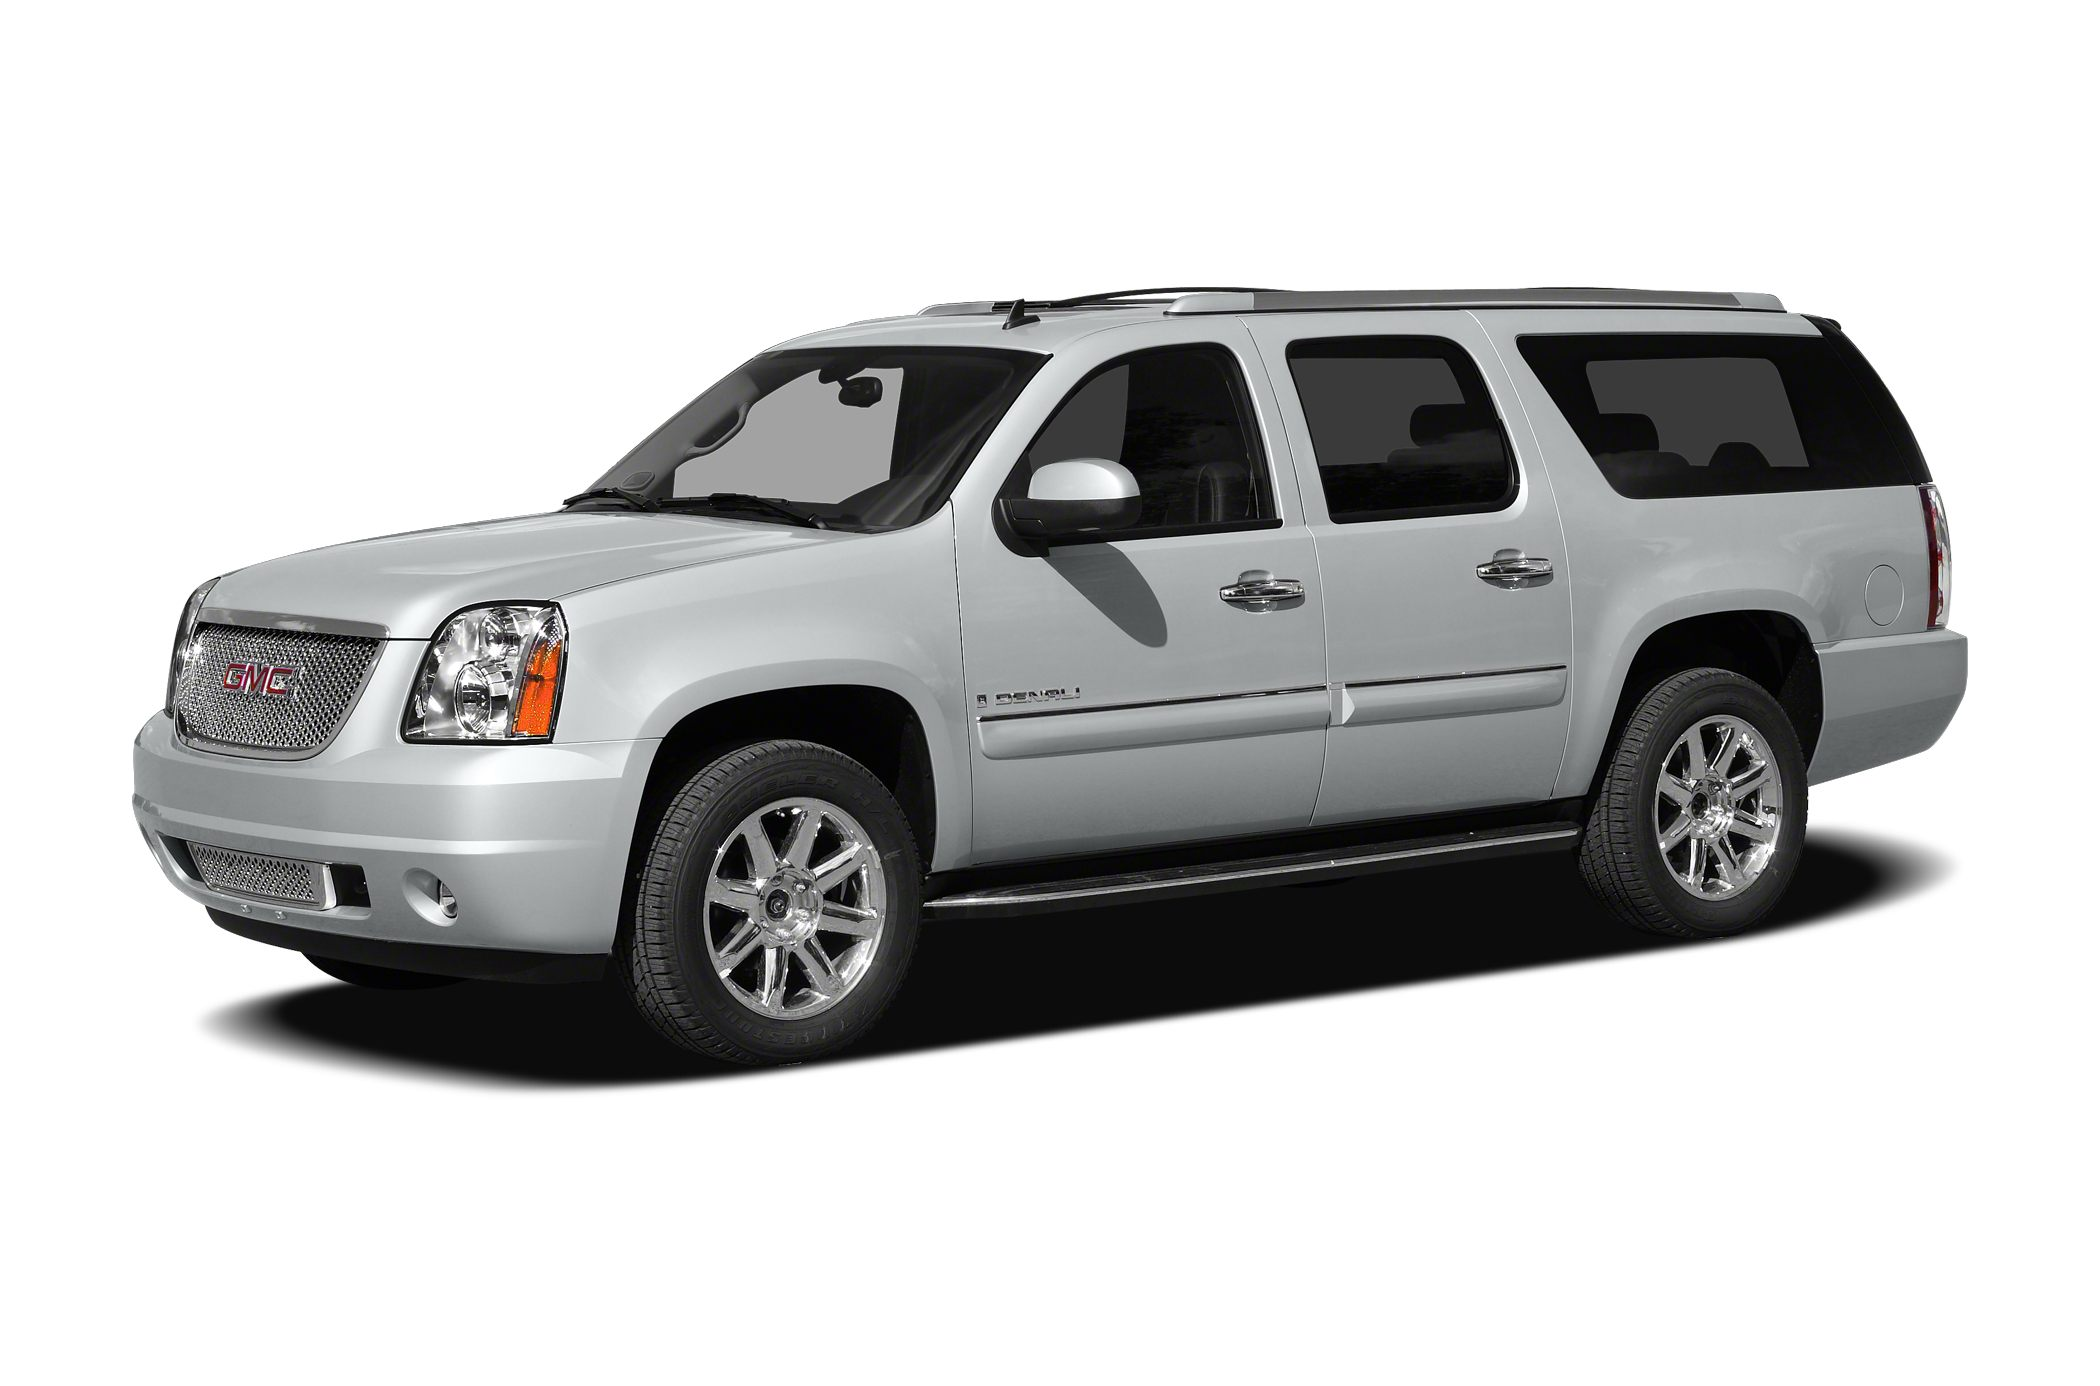 2011 GMC Yukon XL 1500 Denali Come see this 2011 GMC Yukon XL Denali It has a Automatic transmiss